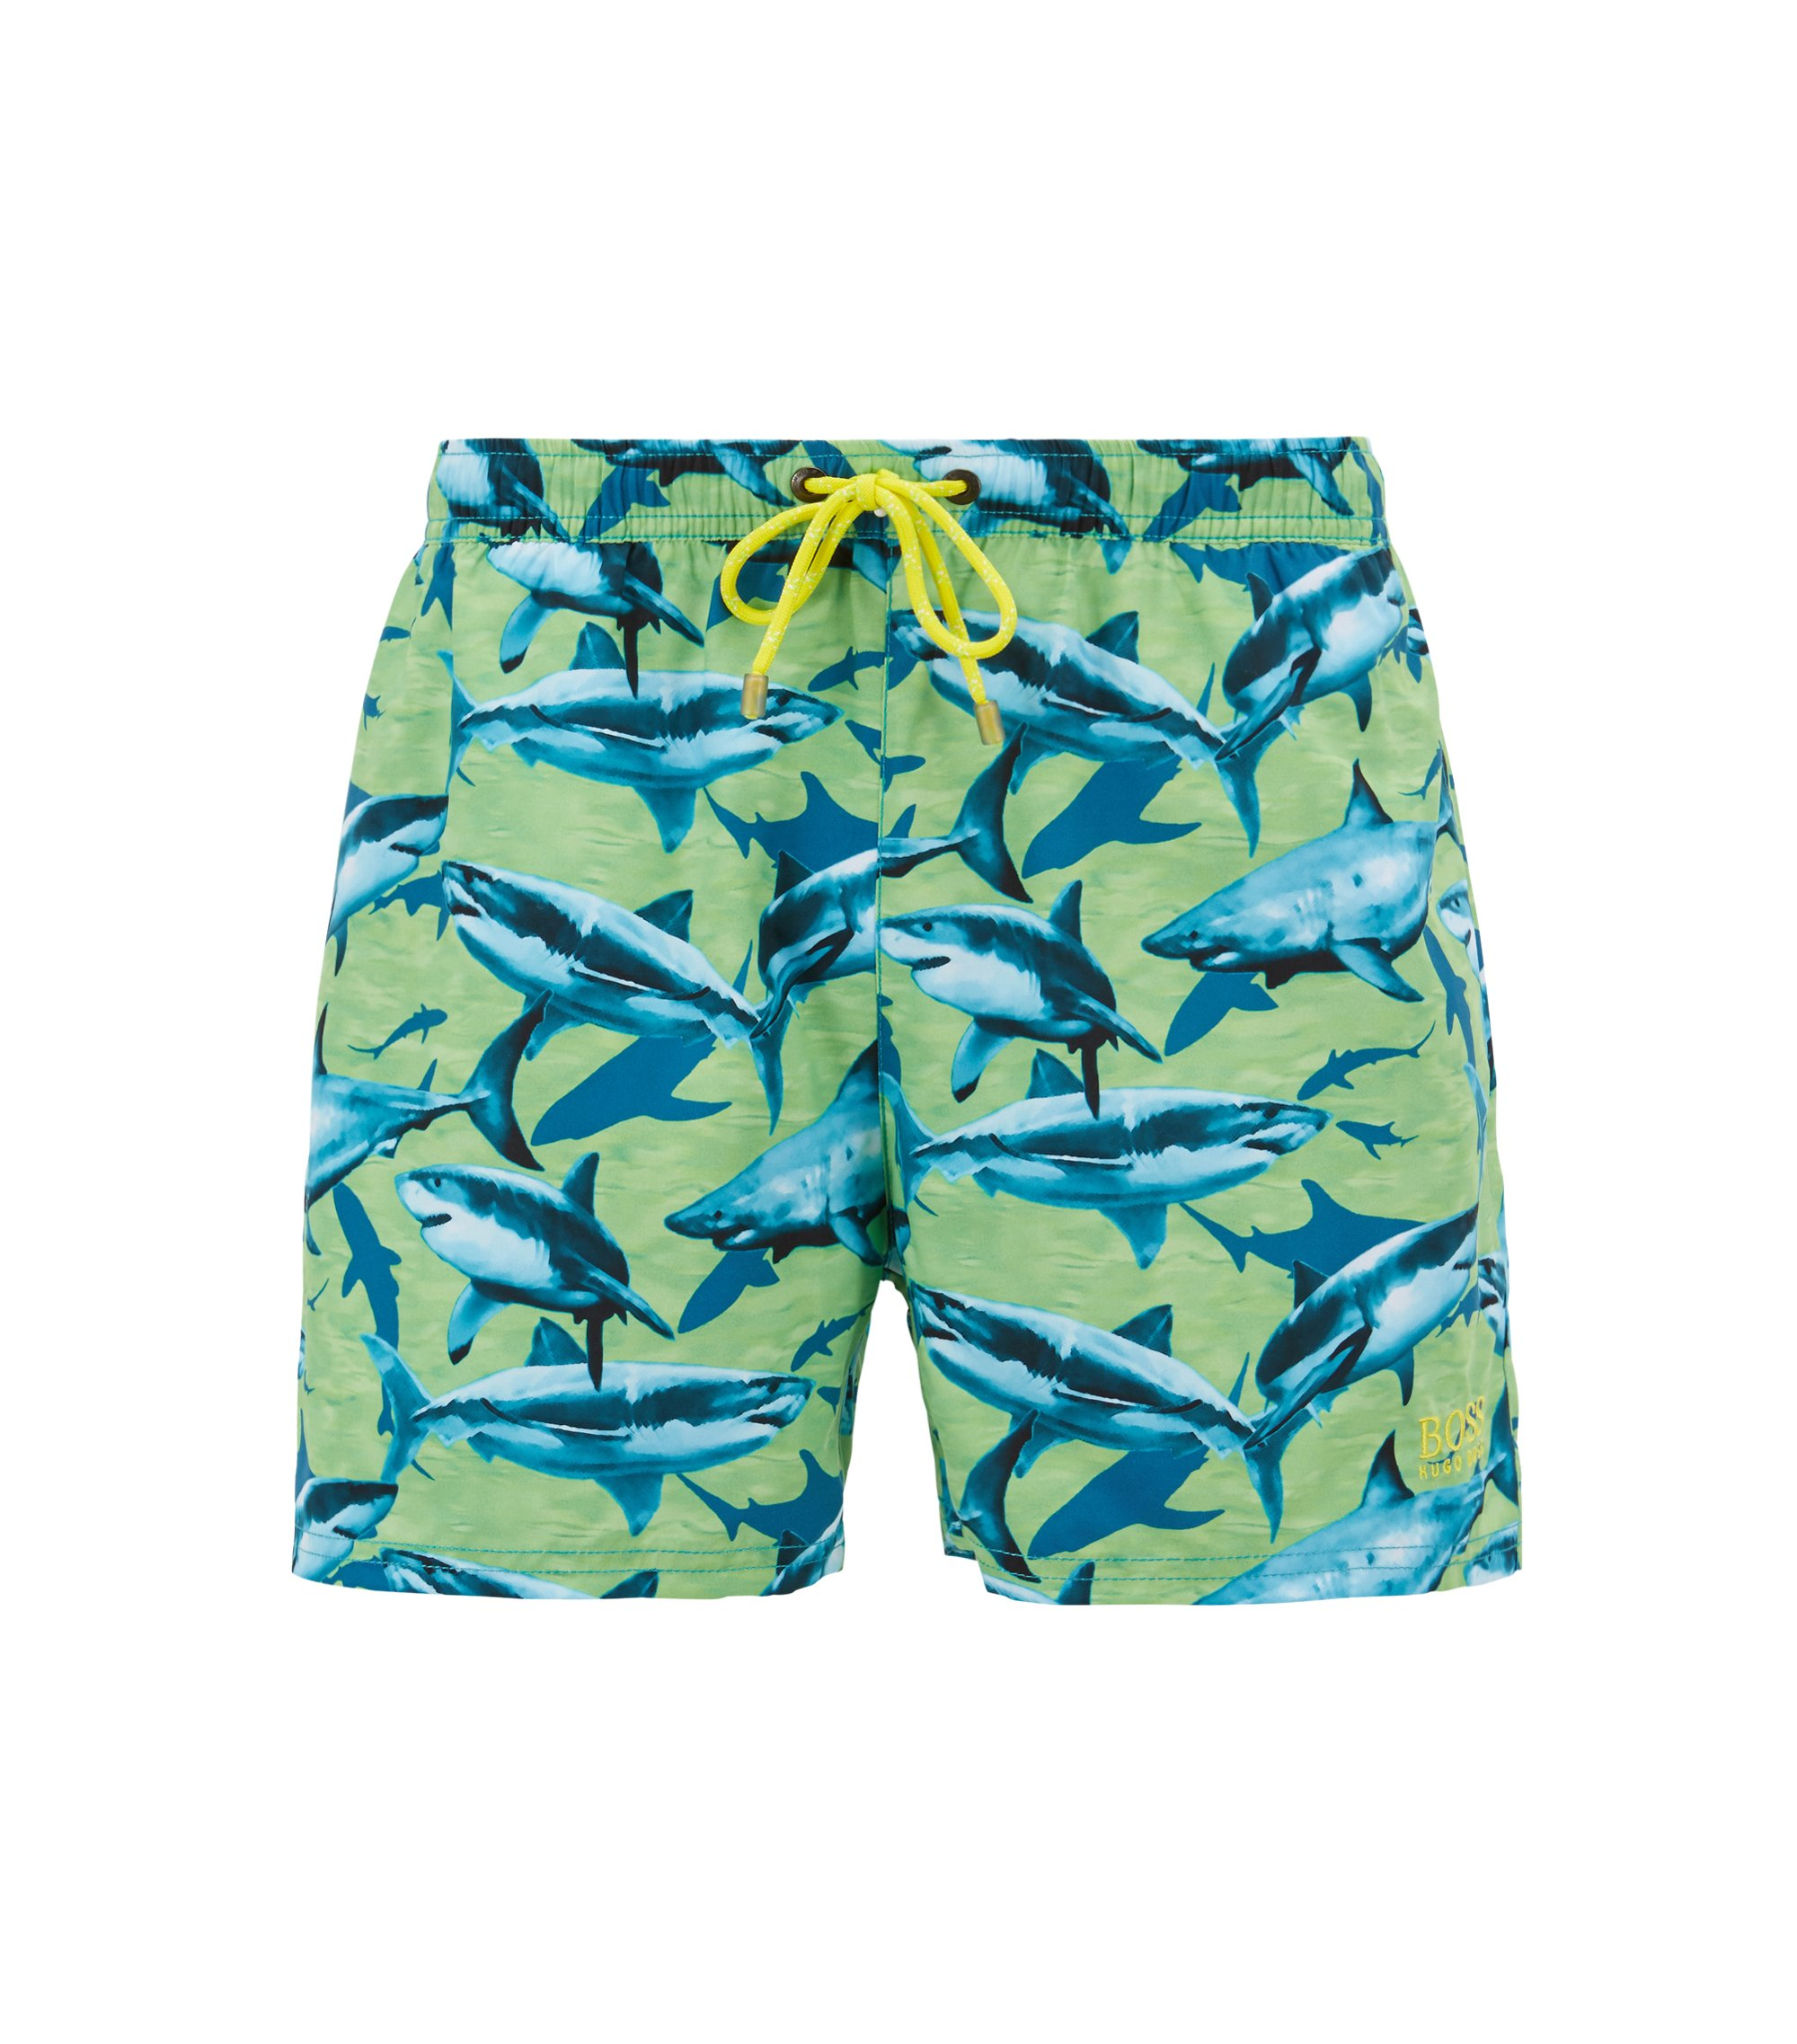 Shorter-length swim shorts with sea-life print, Green